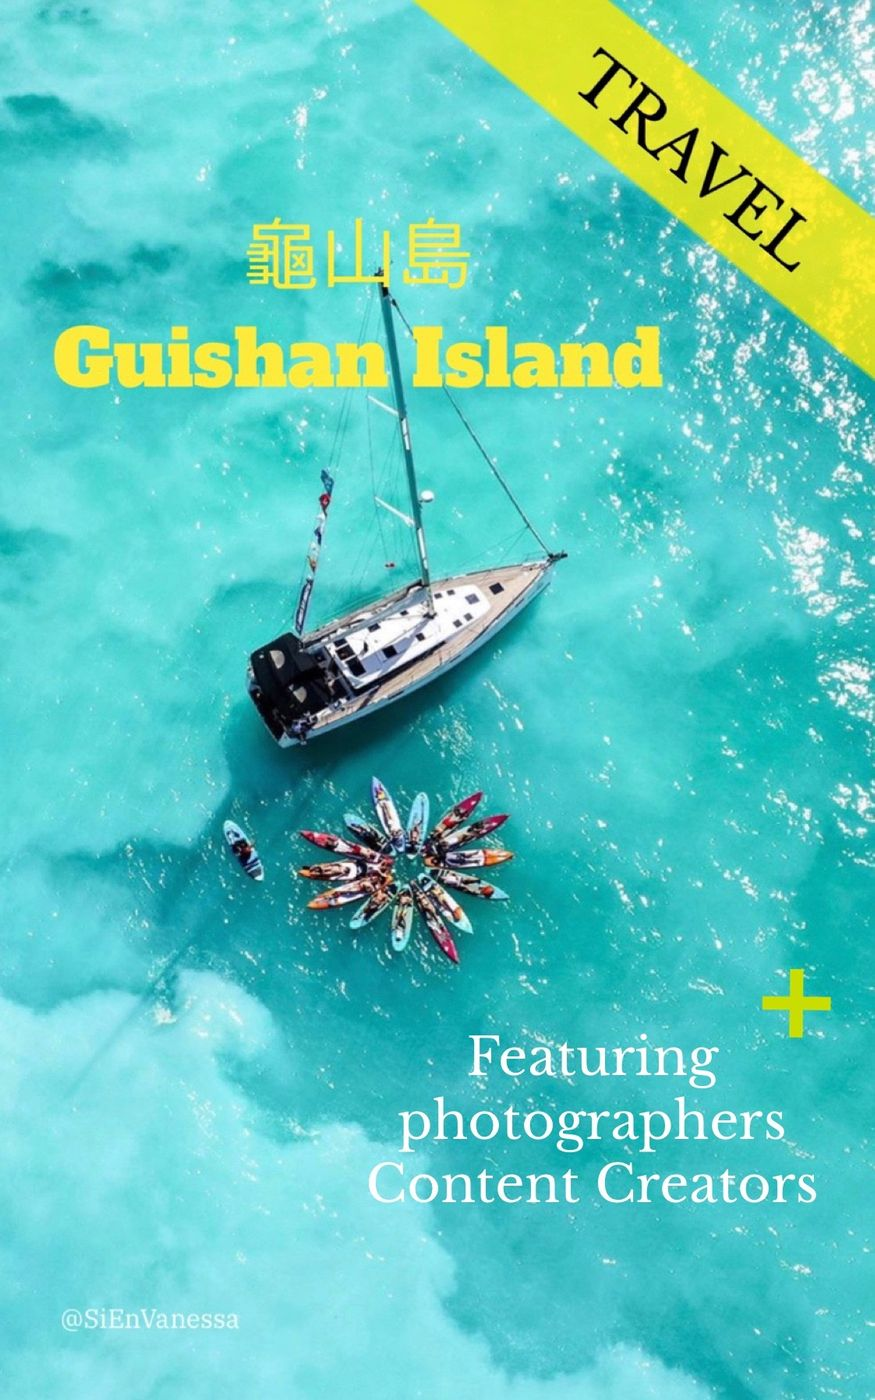 Featuring content creators and photographers | Guishan Island (龜山島)